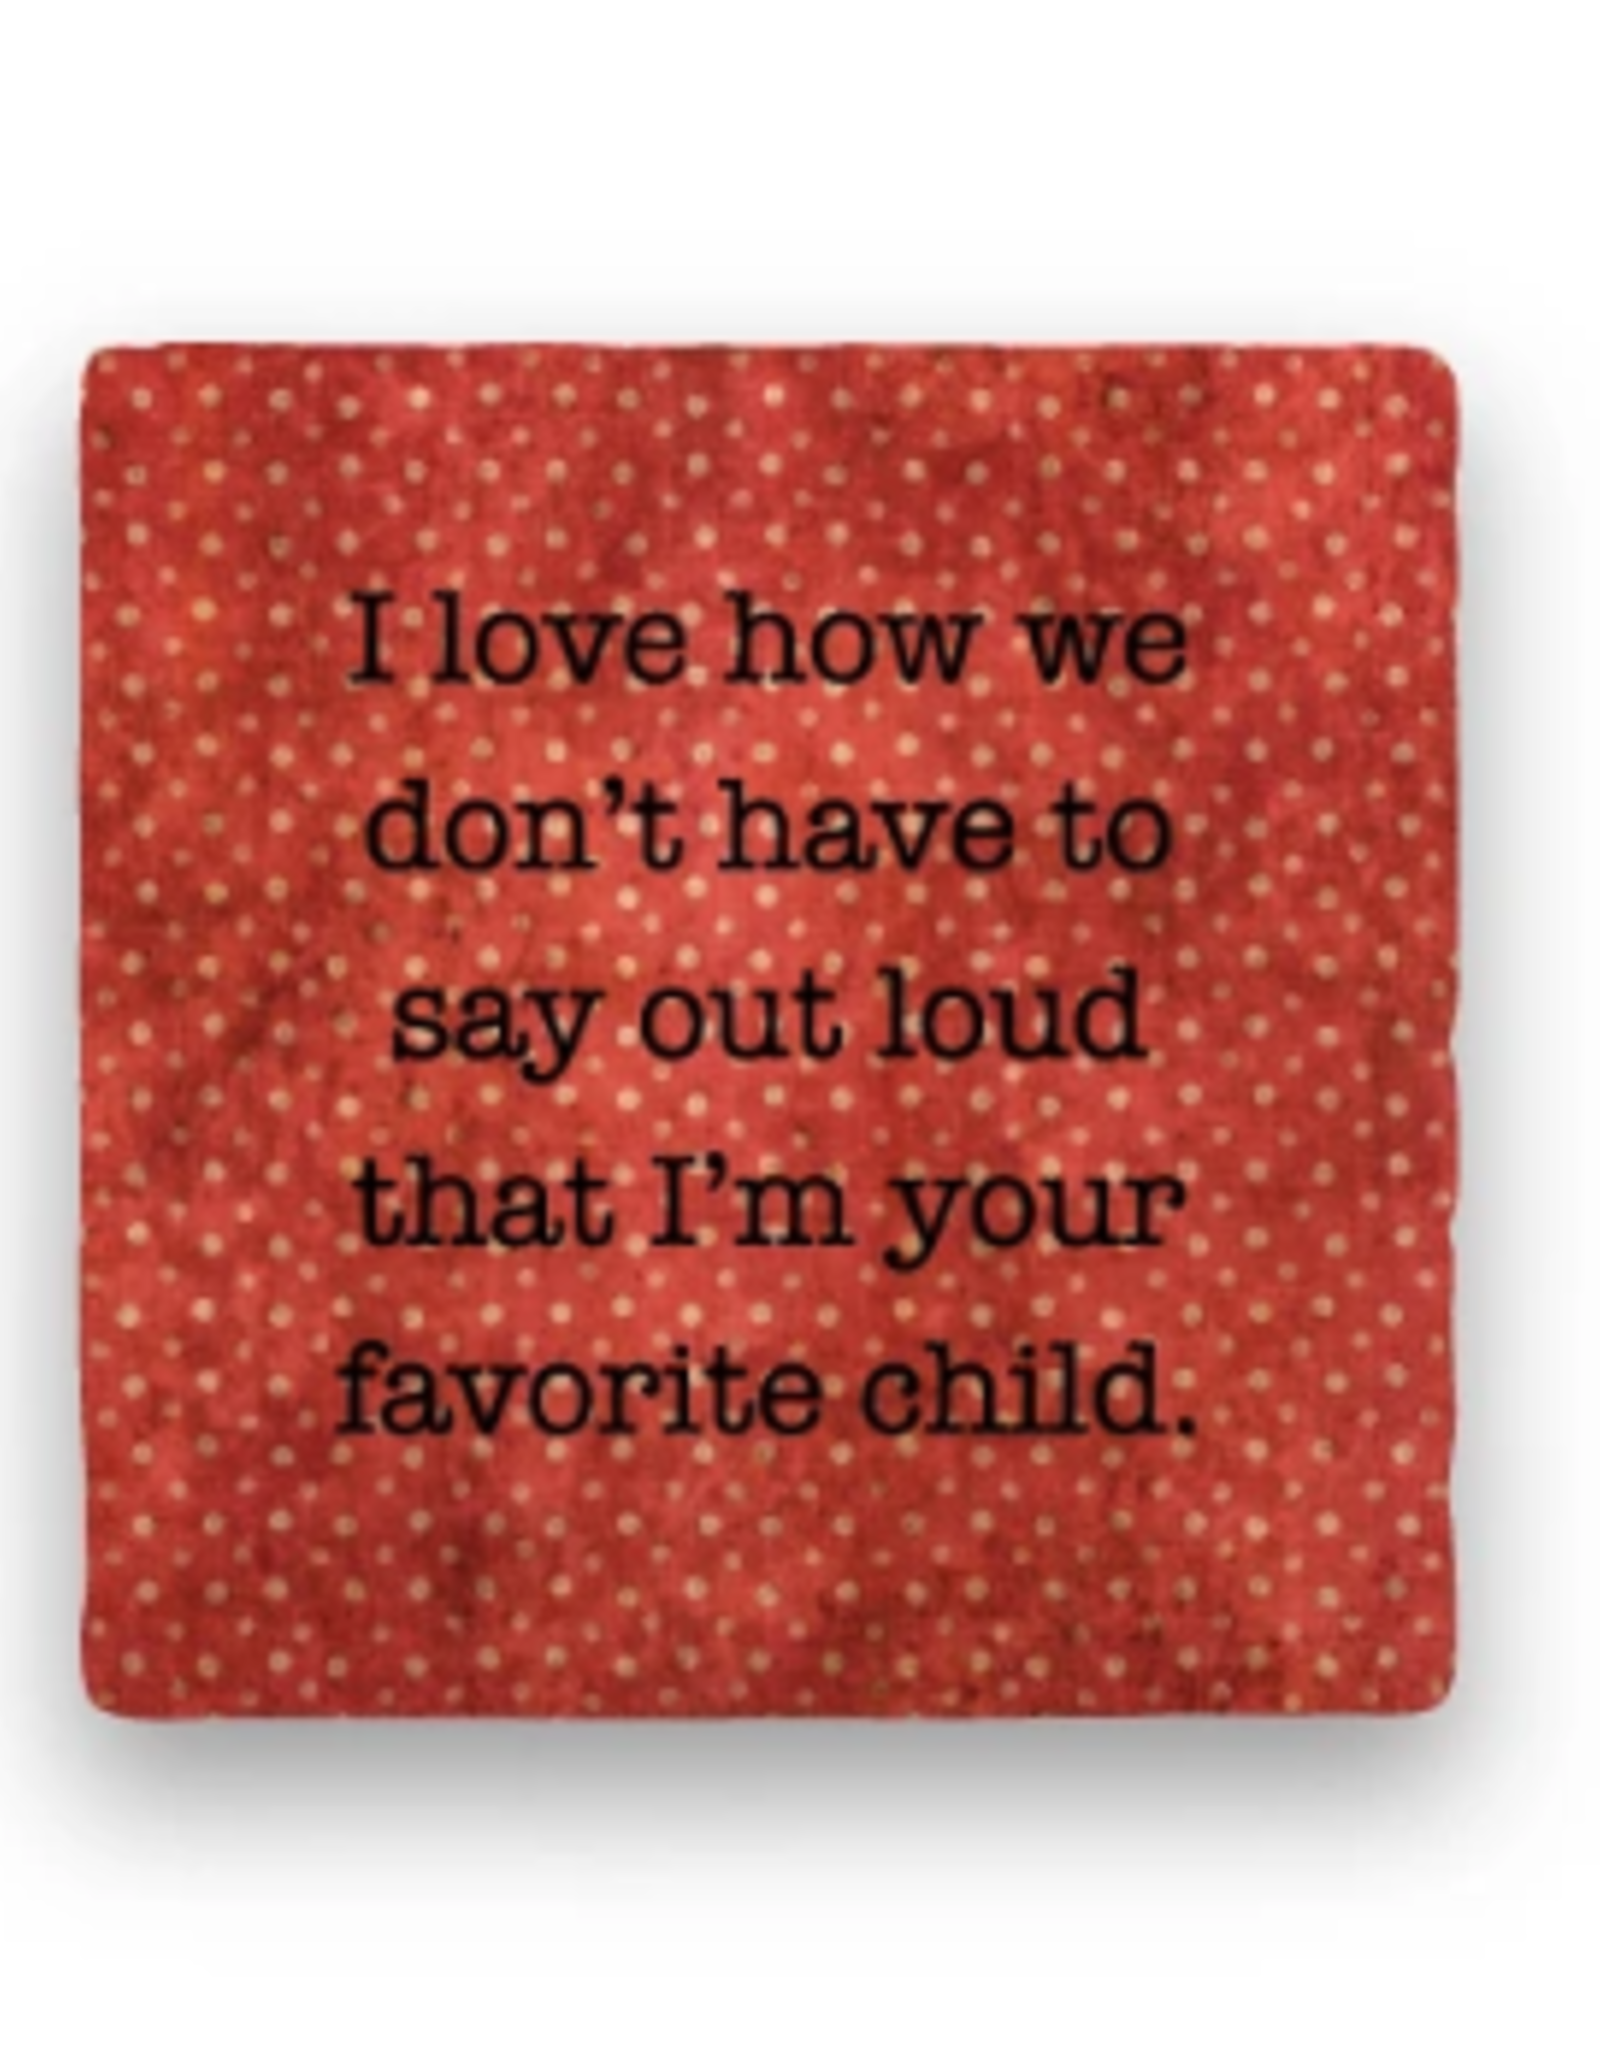 Paisley & Parsley Designs Coaster, Favorite Child